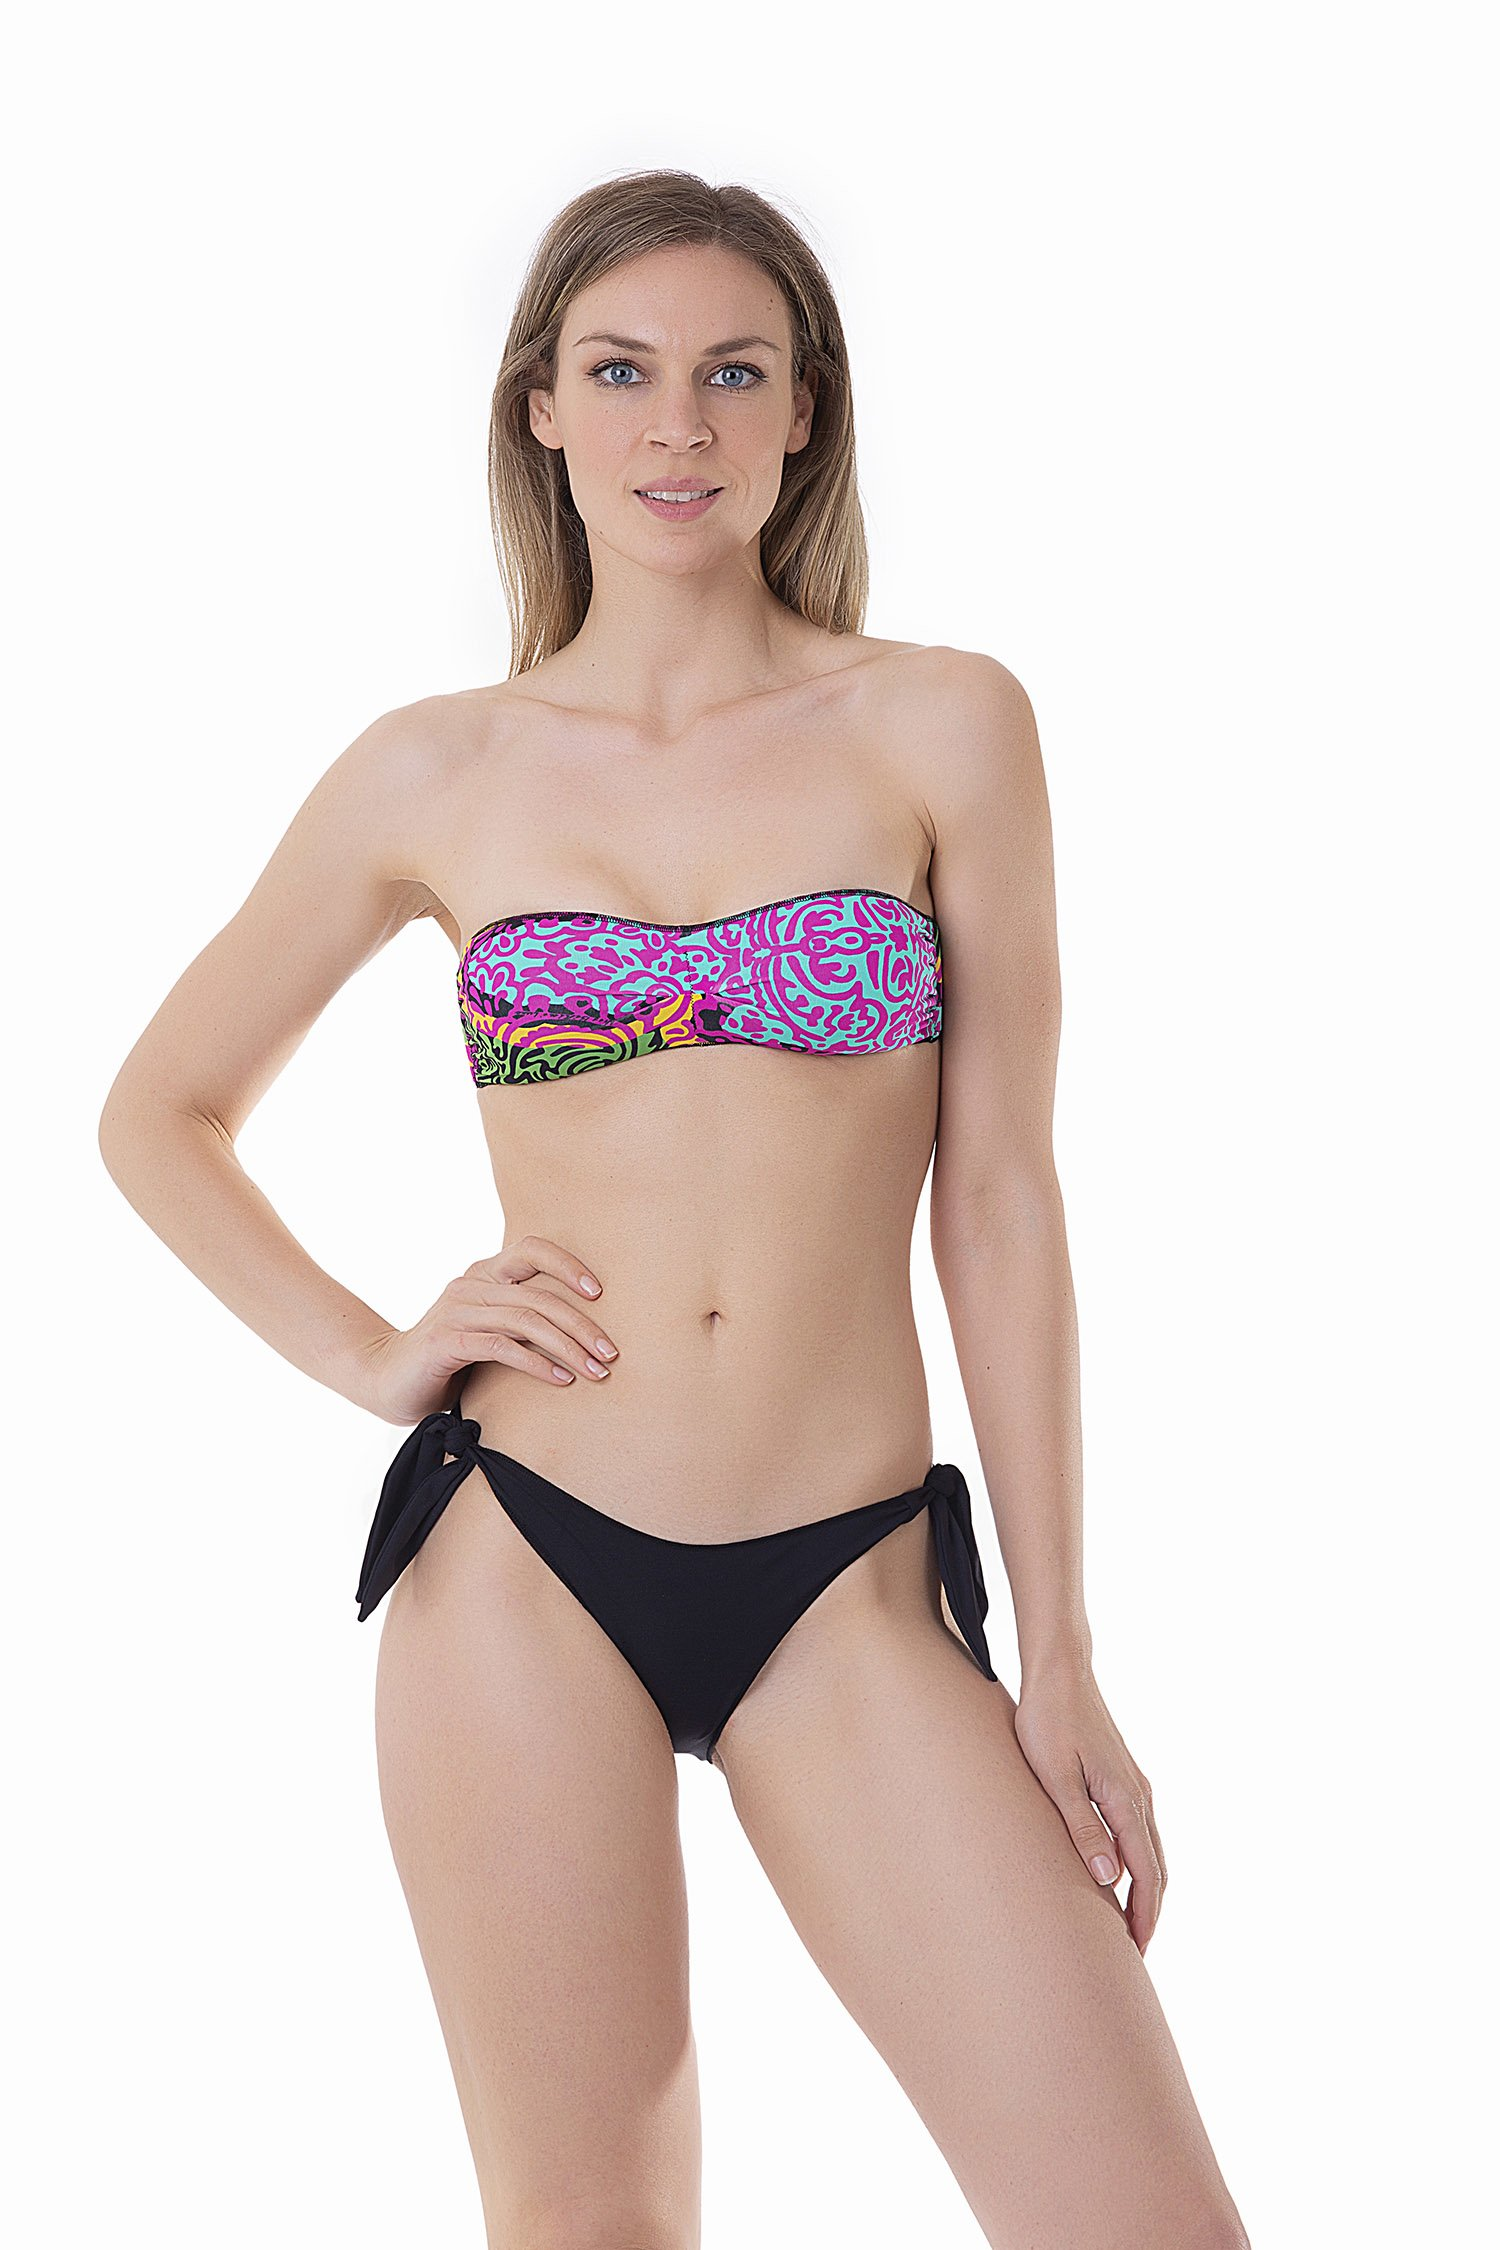 BASIC BANDEAU BIKINI BOTTOM WITH KNOTTED STRAPS MIX PRINTED AND SOLID COLOUR - Pofu+Mipr